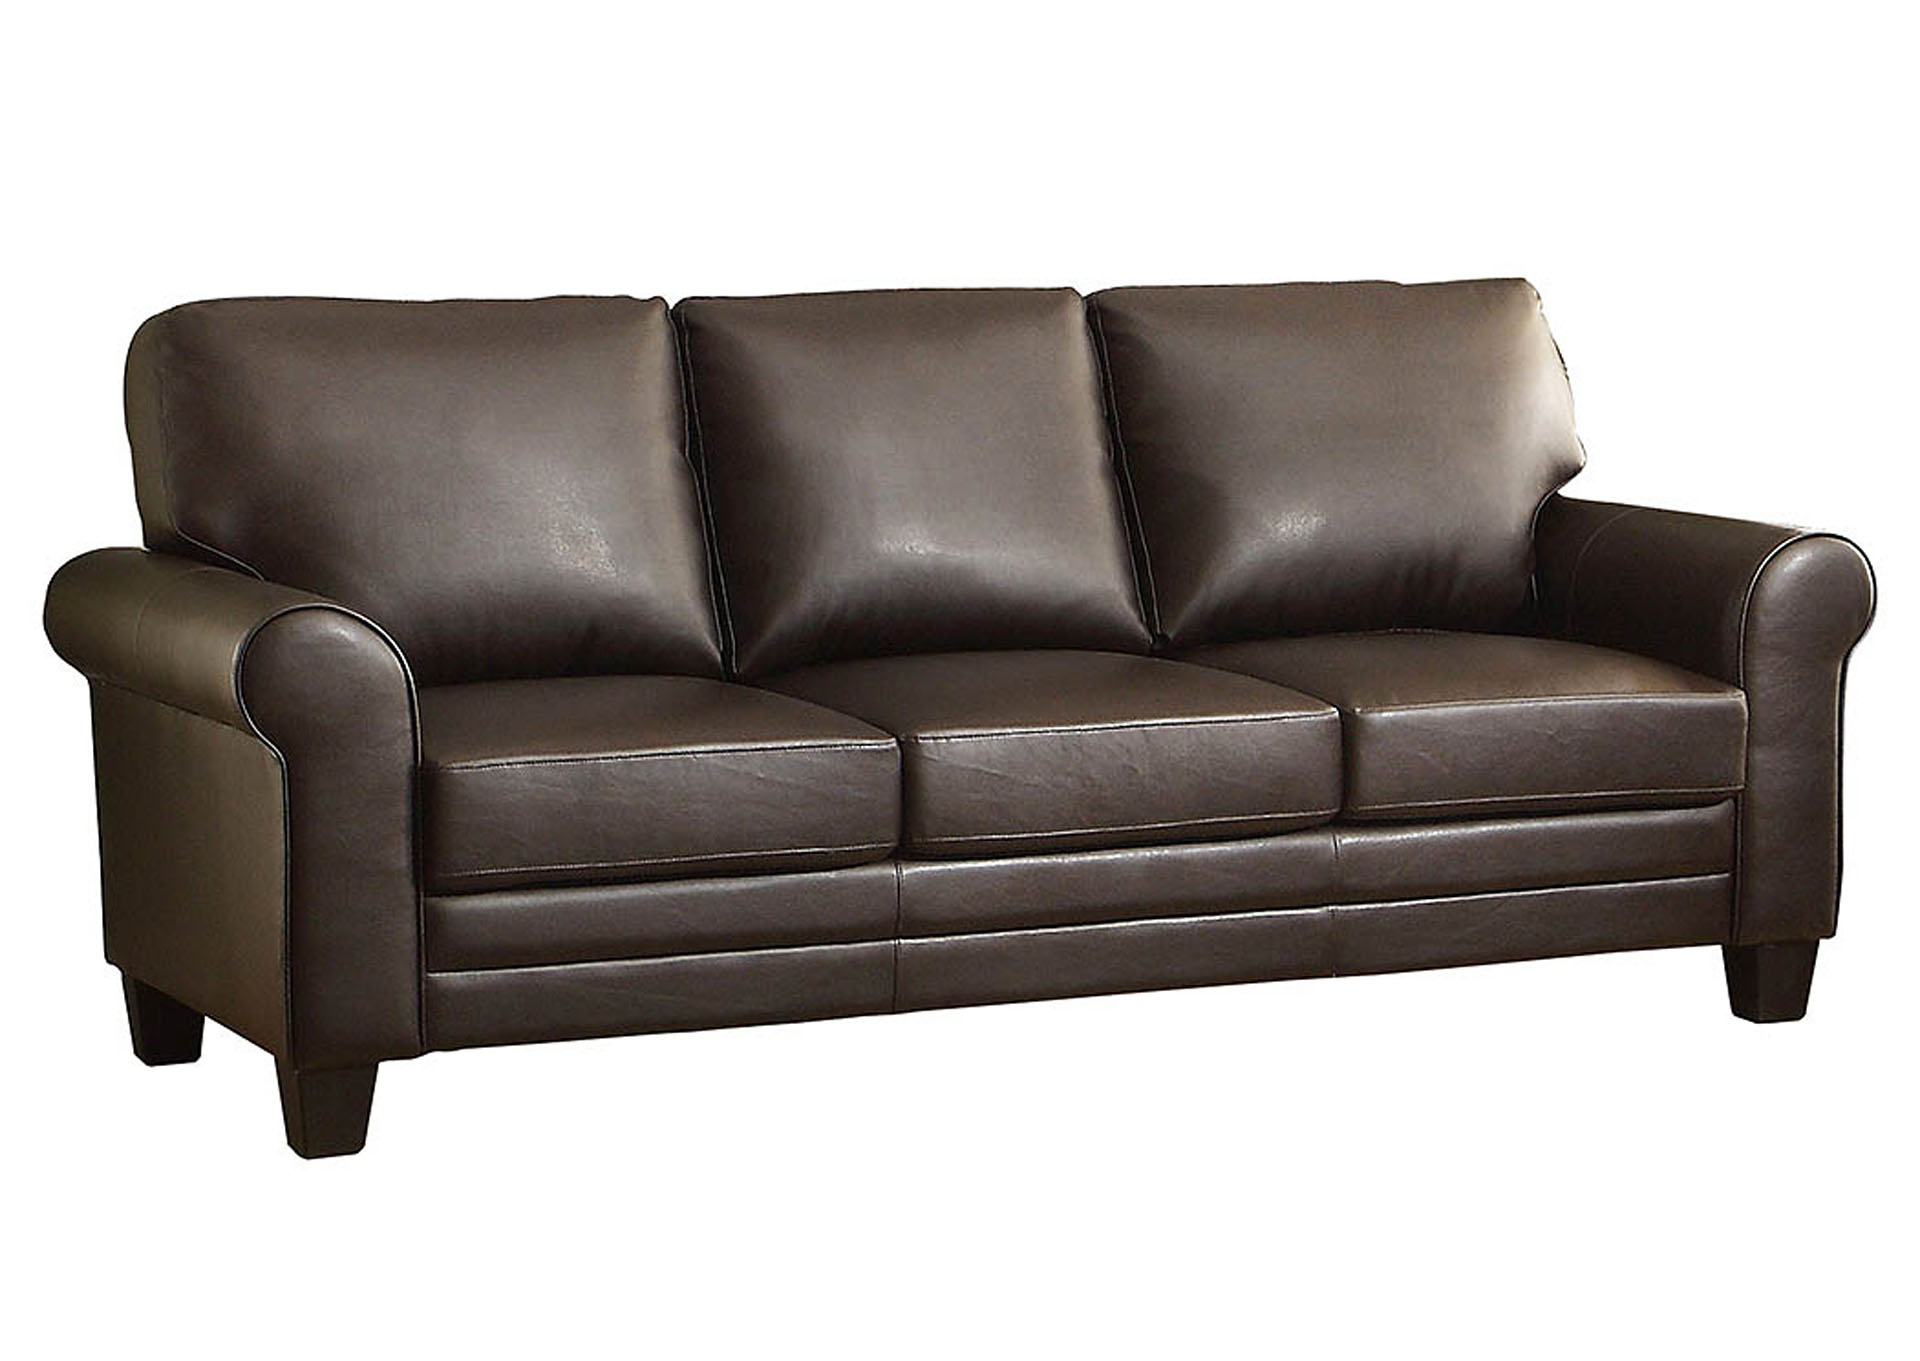 La Credenza In Hume : Gibson home store hume dark brown sofa